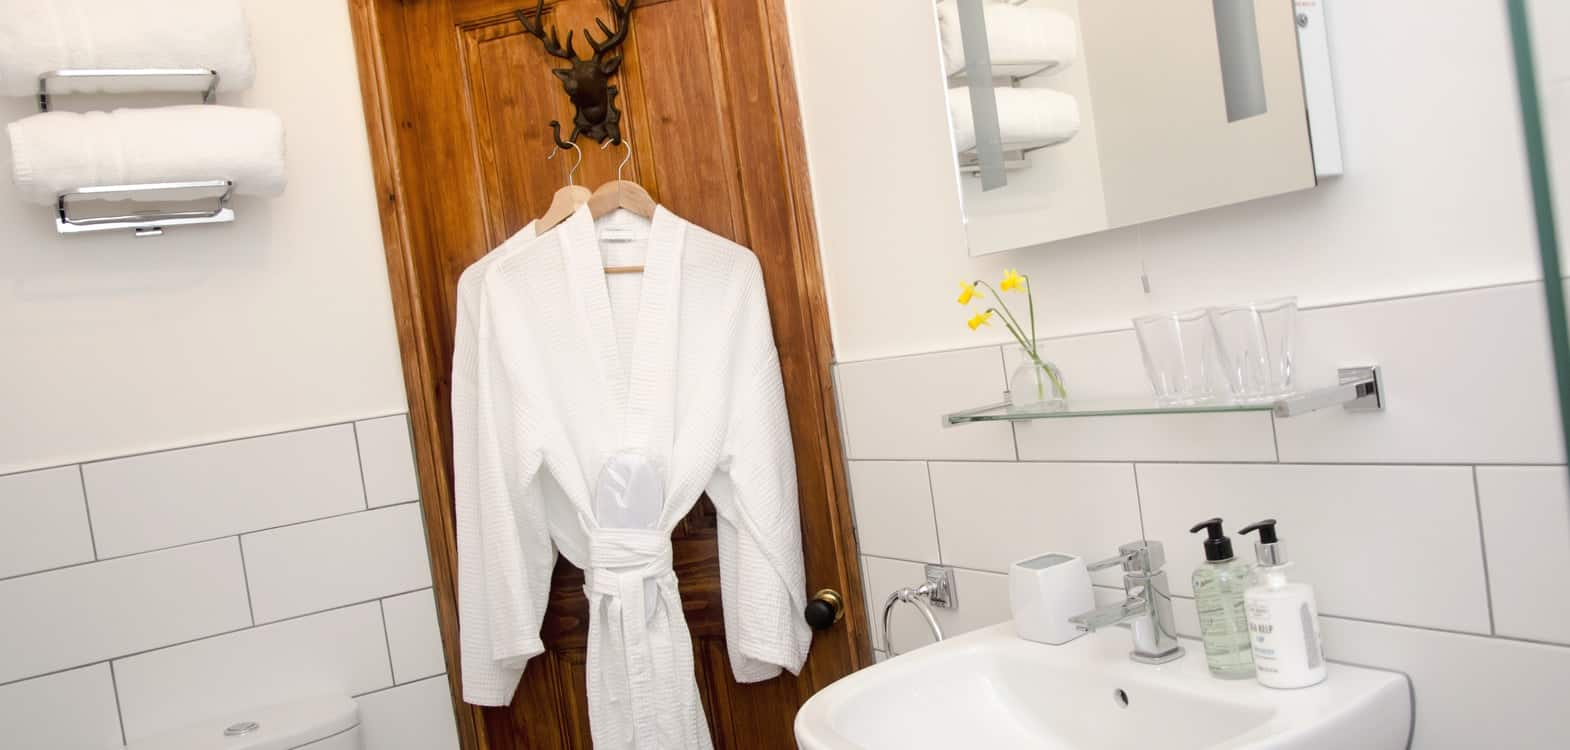 white cotton bathrobes hanging on thee back of a bathroom door in a white tiled bathroom with white sink